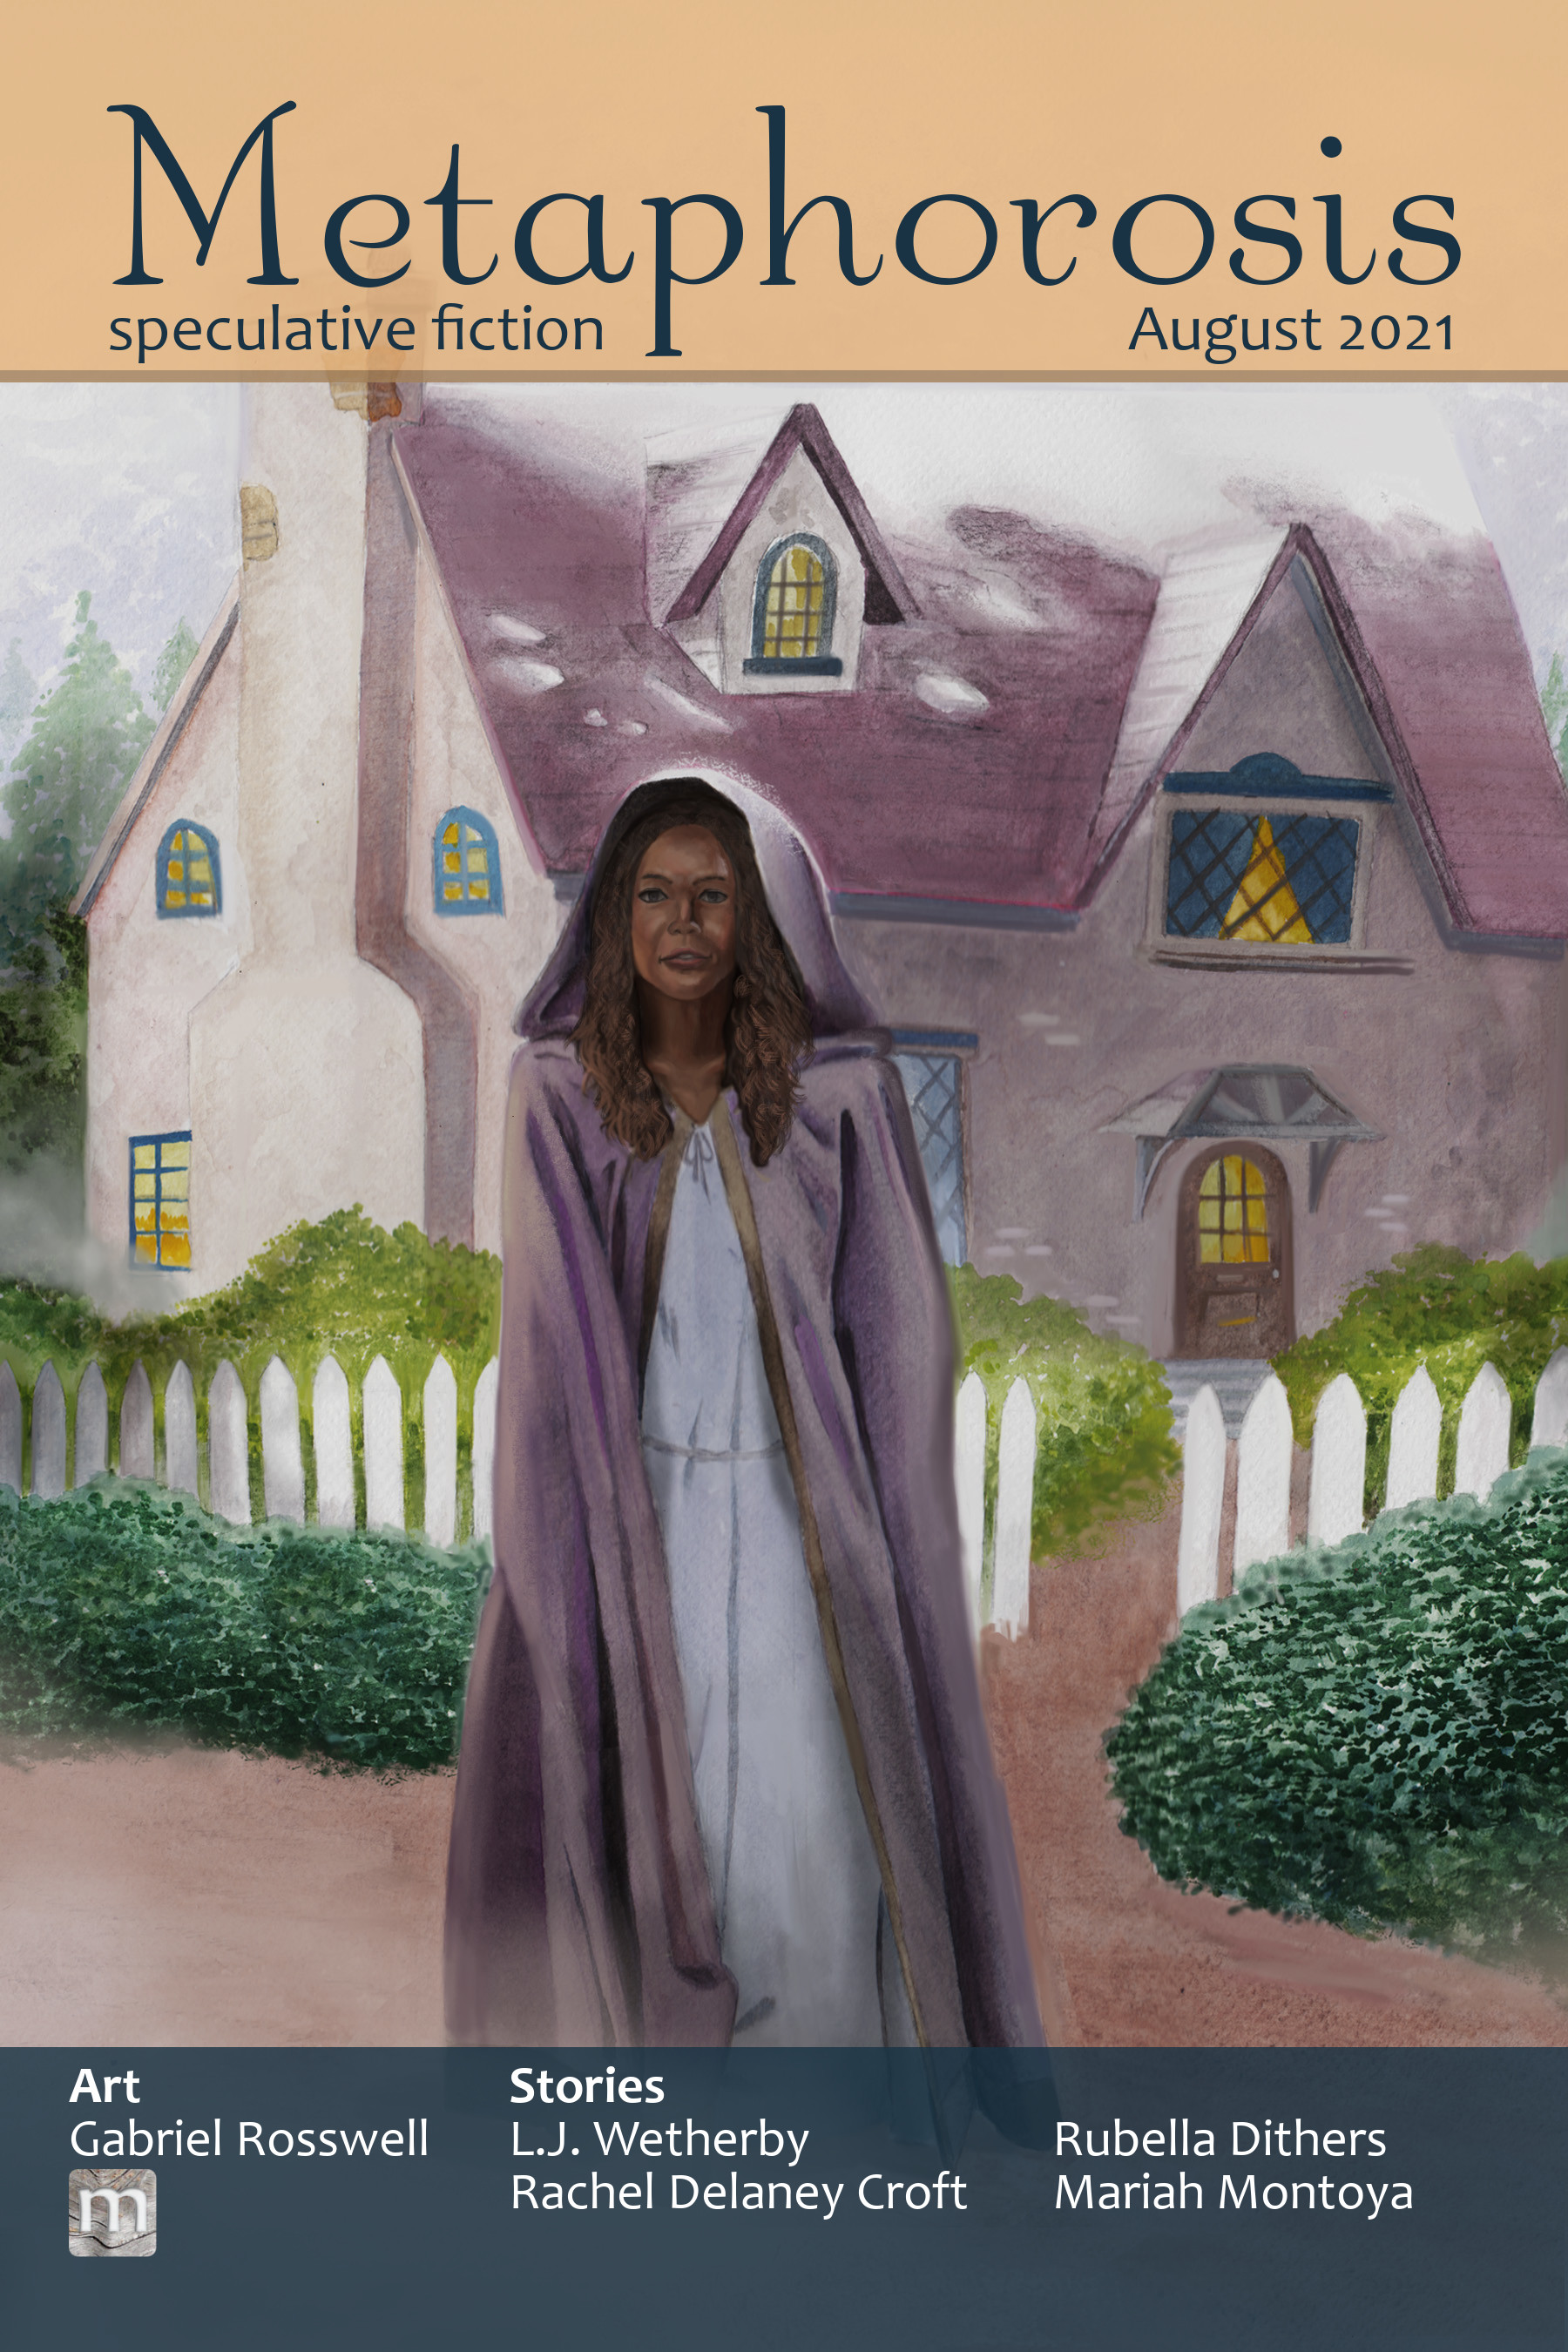 A Wizard Comes to Shorehaven – L.J. Wetherby